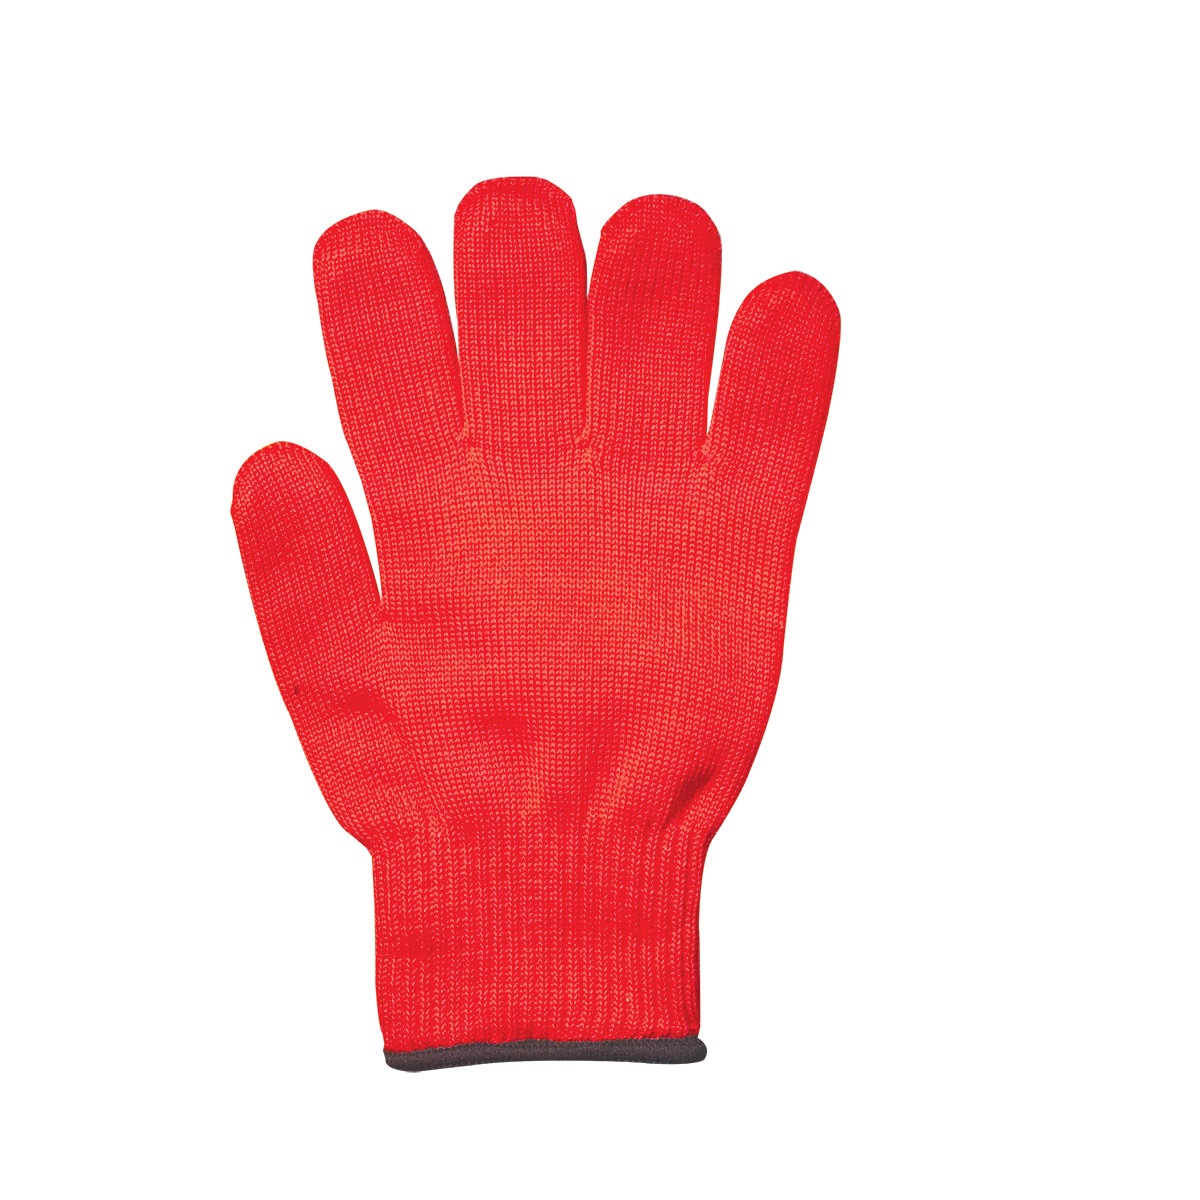 Heat Oven Glove - Red